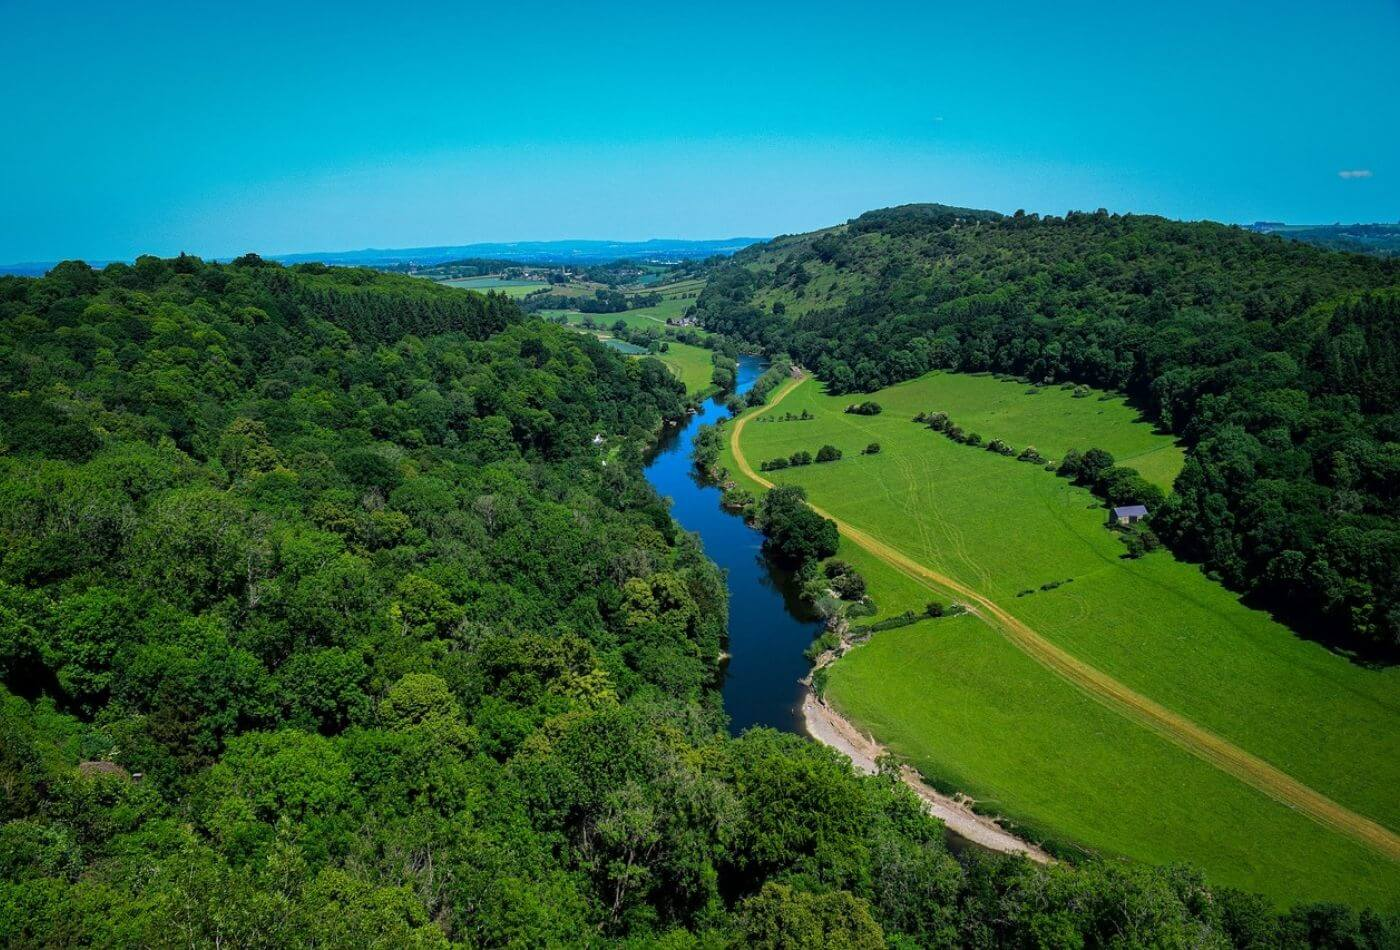 Arial views of the Forest of Dean and Wye Valley